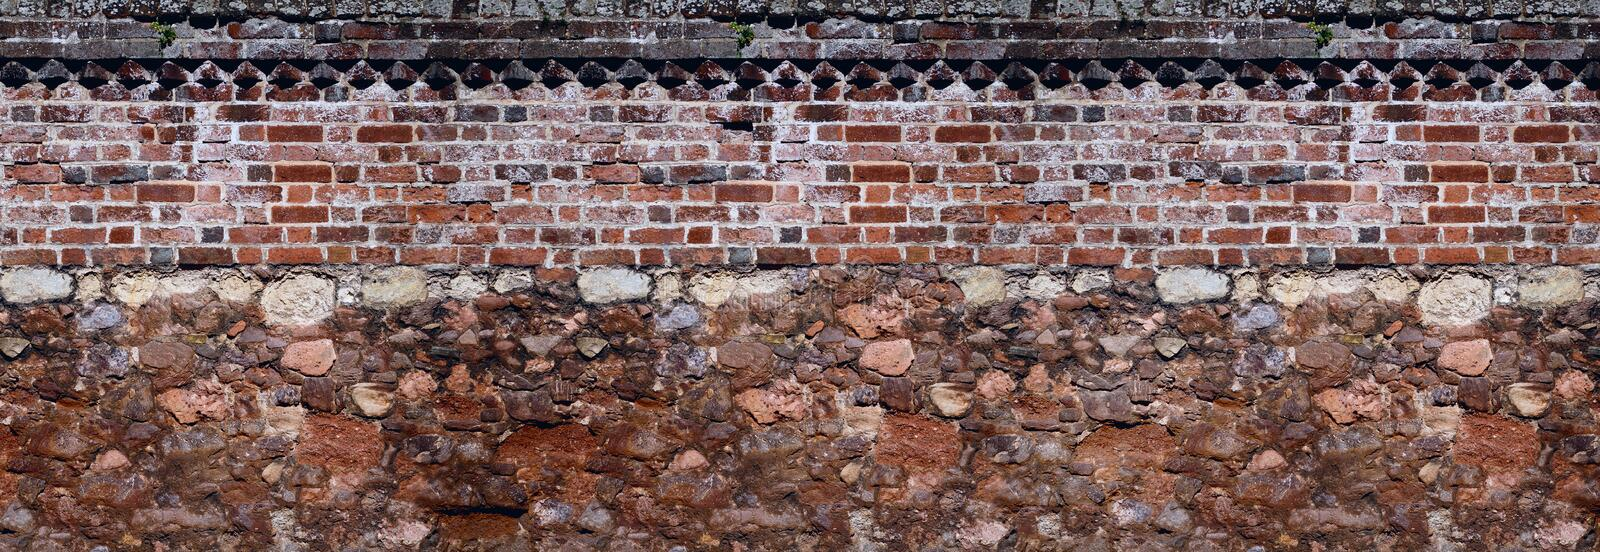 Together old masonry and brickwork walls. Background royalty free stock photo